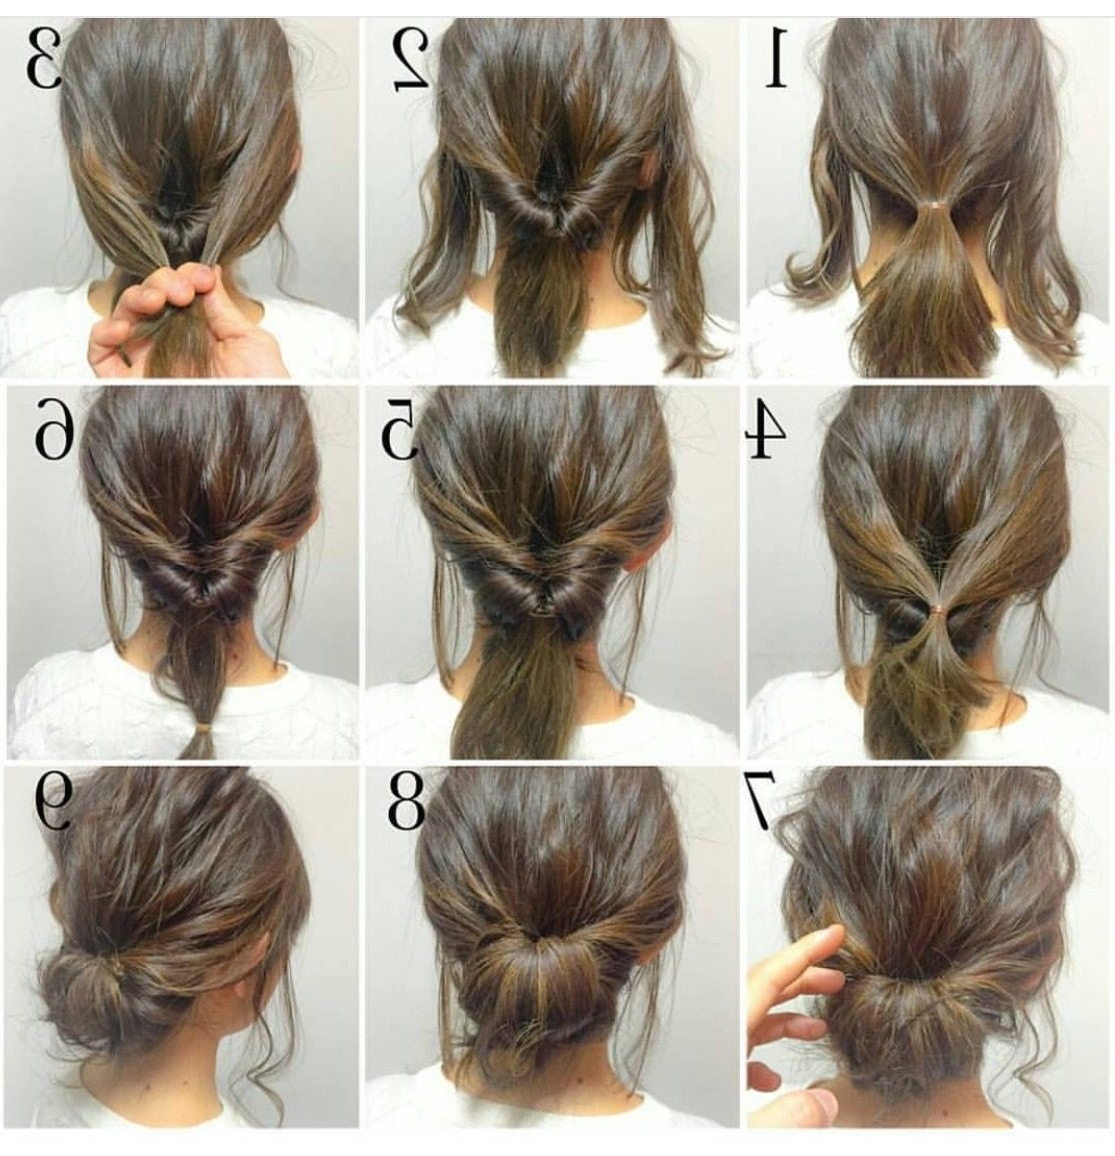 Easy, Hope This Works Out Quick Morning Hair! | • H A I R Pertaining To Simple Hair Updo Hairstyles (Gallery 2 of 15)